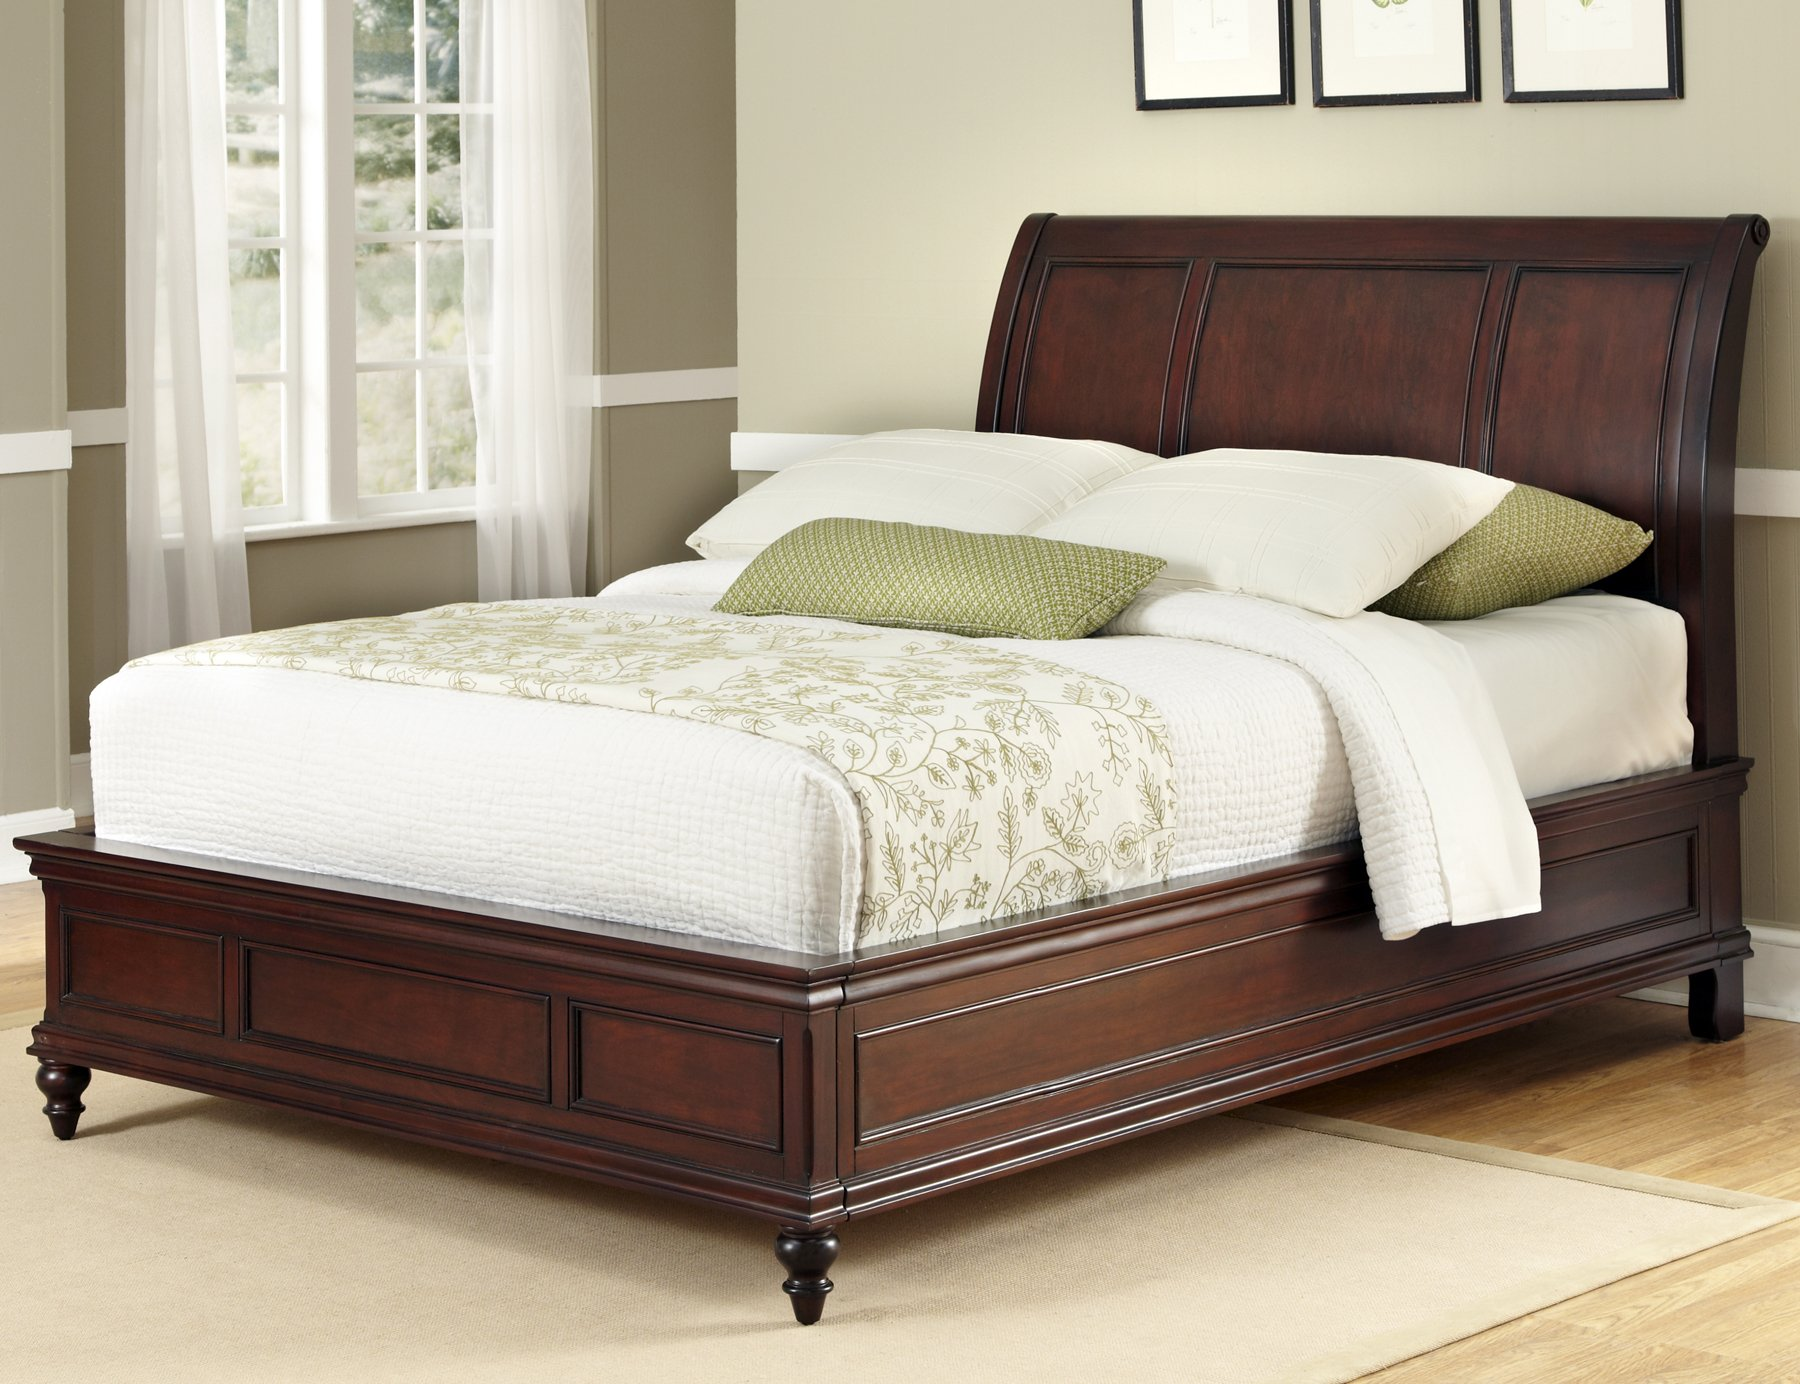 sleigh amazon size kitchen king french bed uk frame oak dp home super solid co